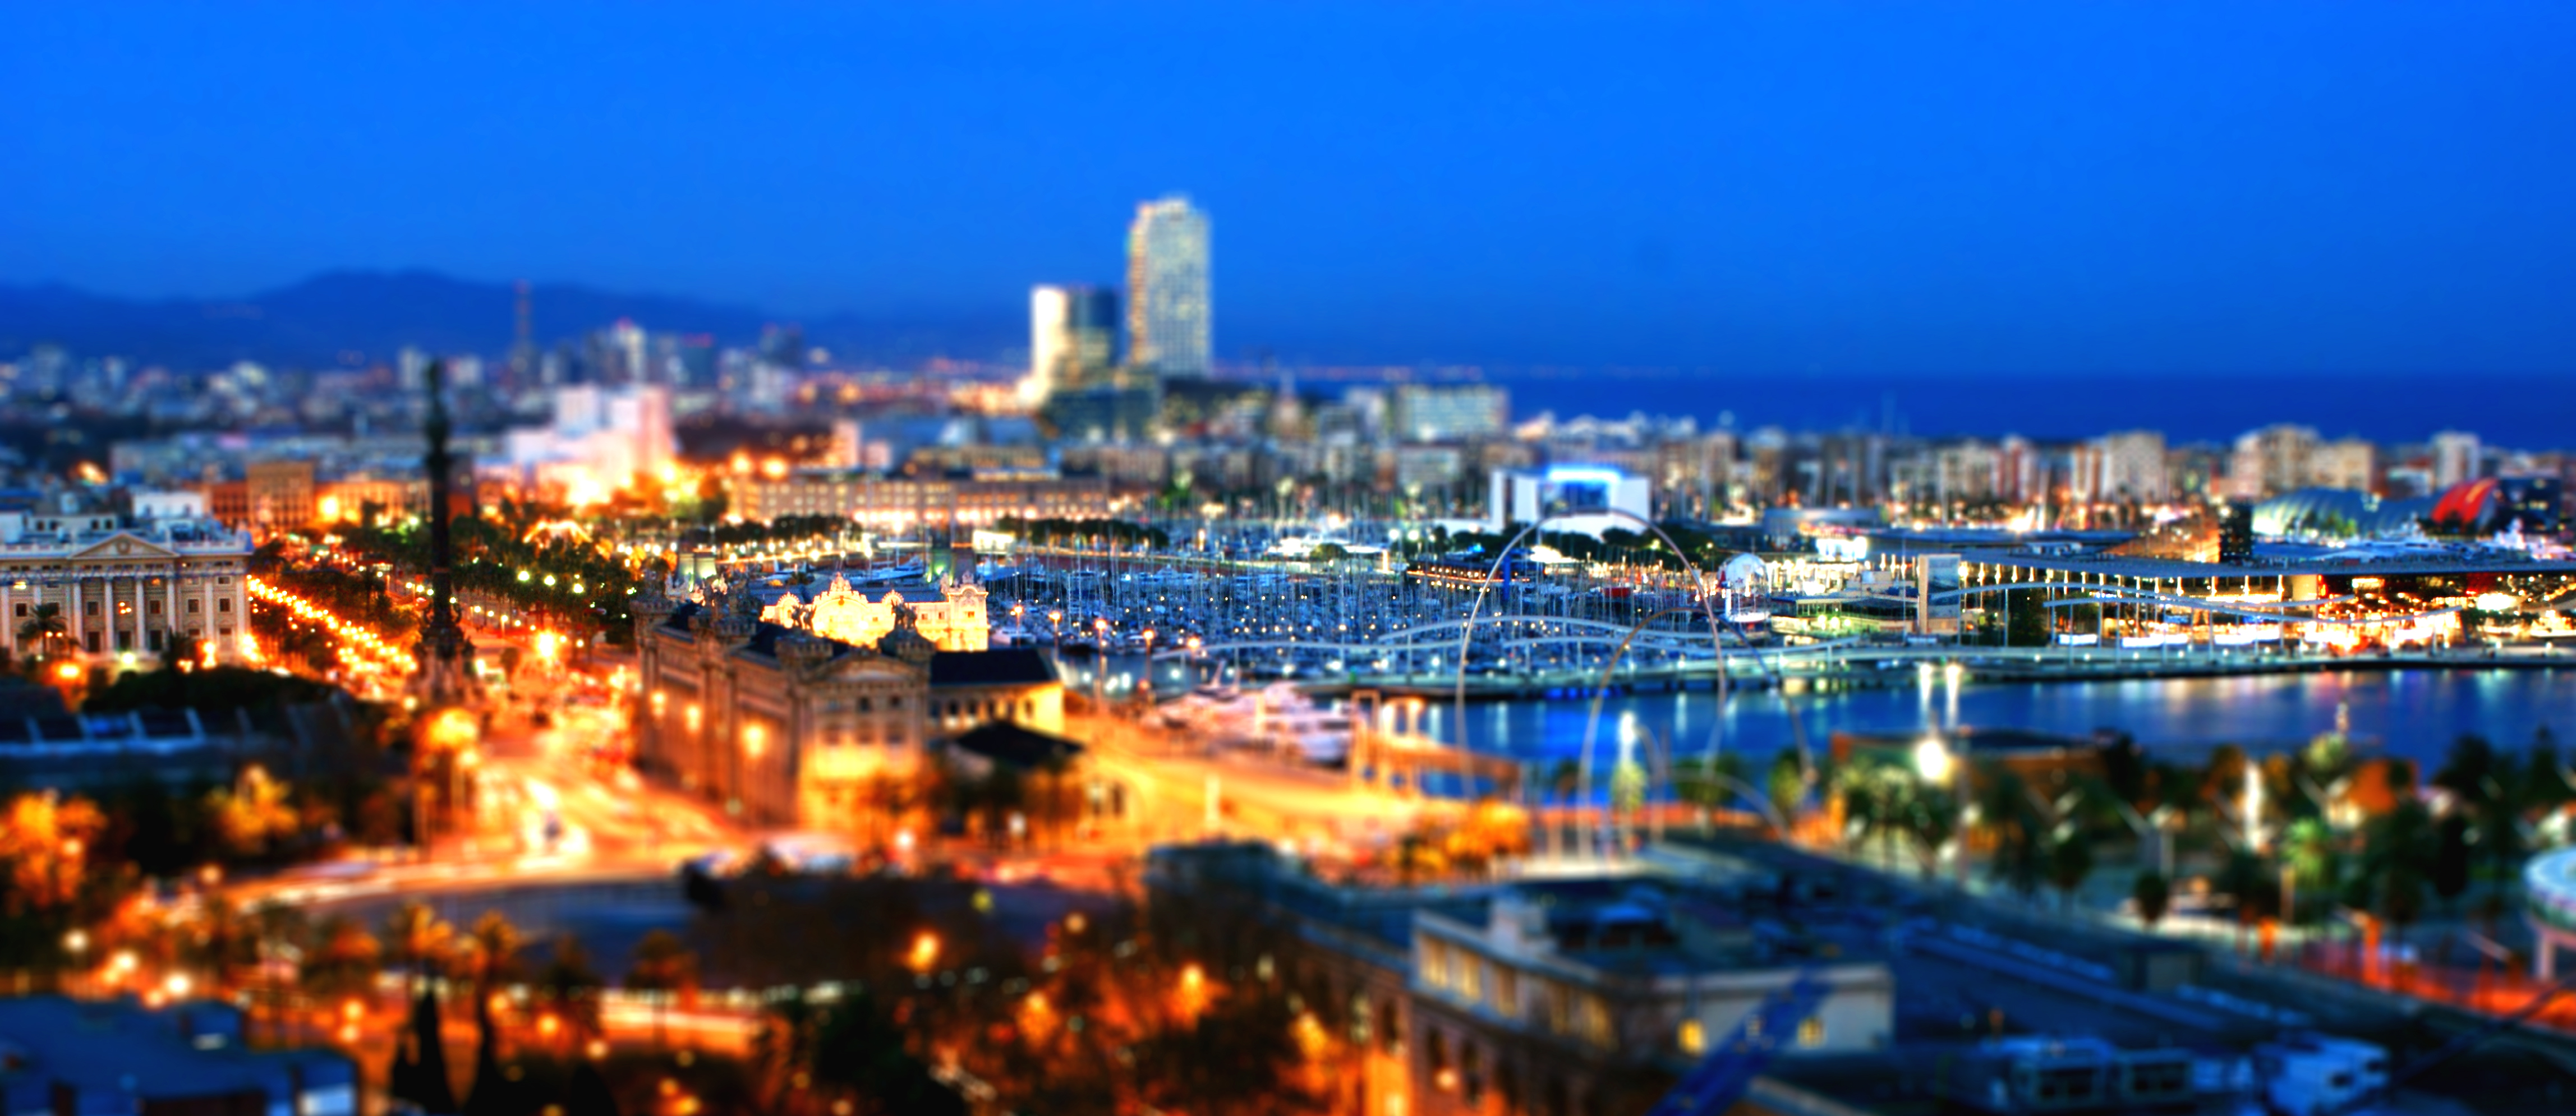 Barcelona: The Most Romantic City In Europe?